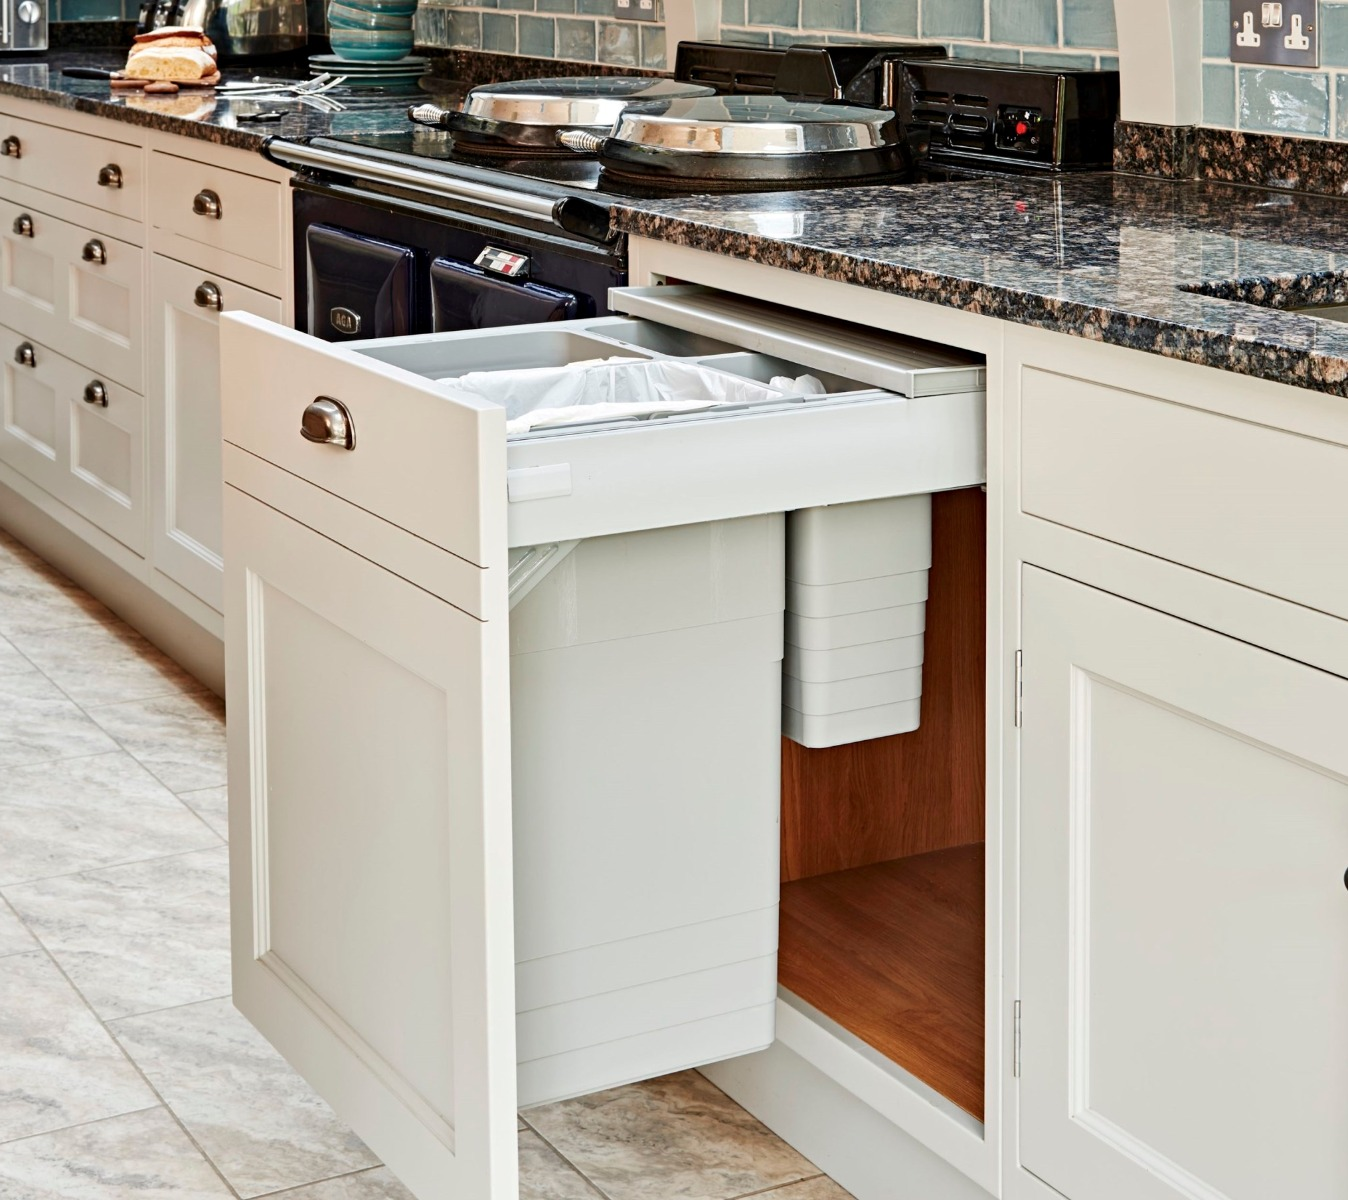 Kitchen Tidy Bins Ensure You Buy The Right In Cupboard Bin By Using Our Buying Guide